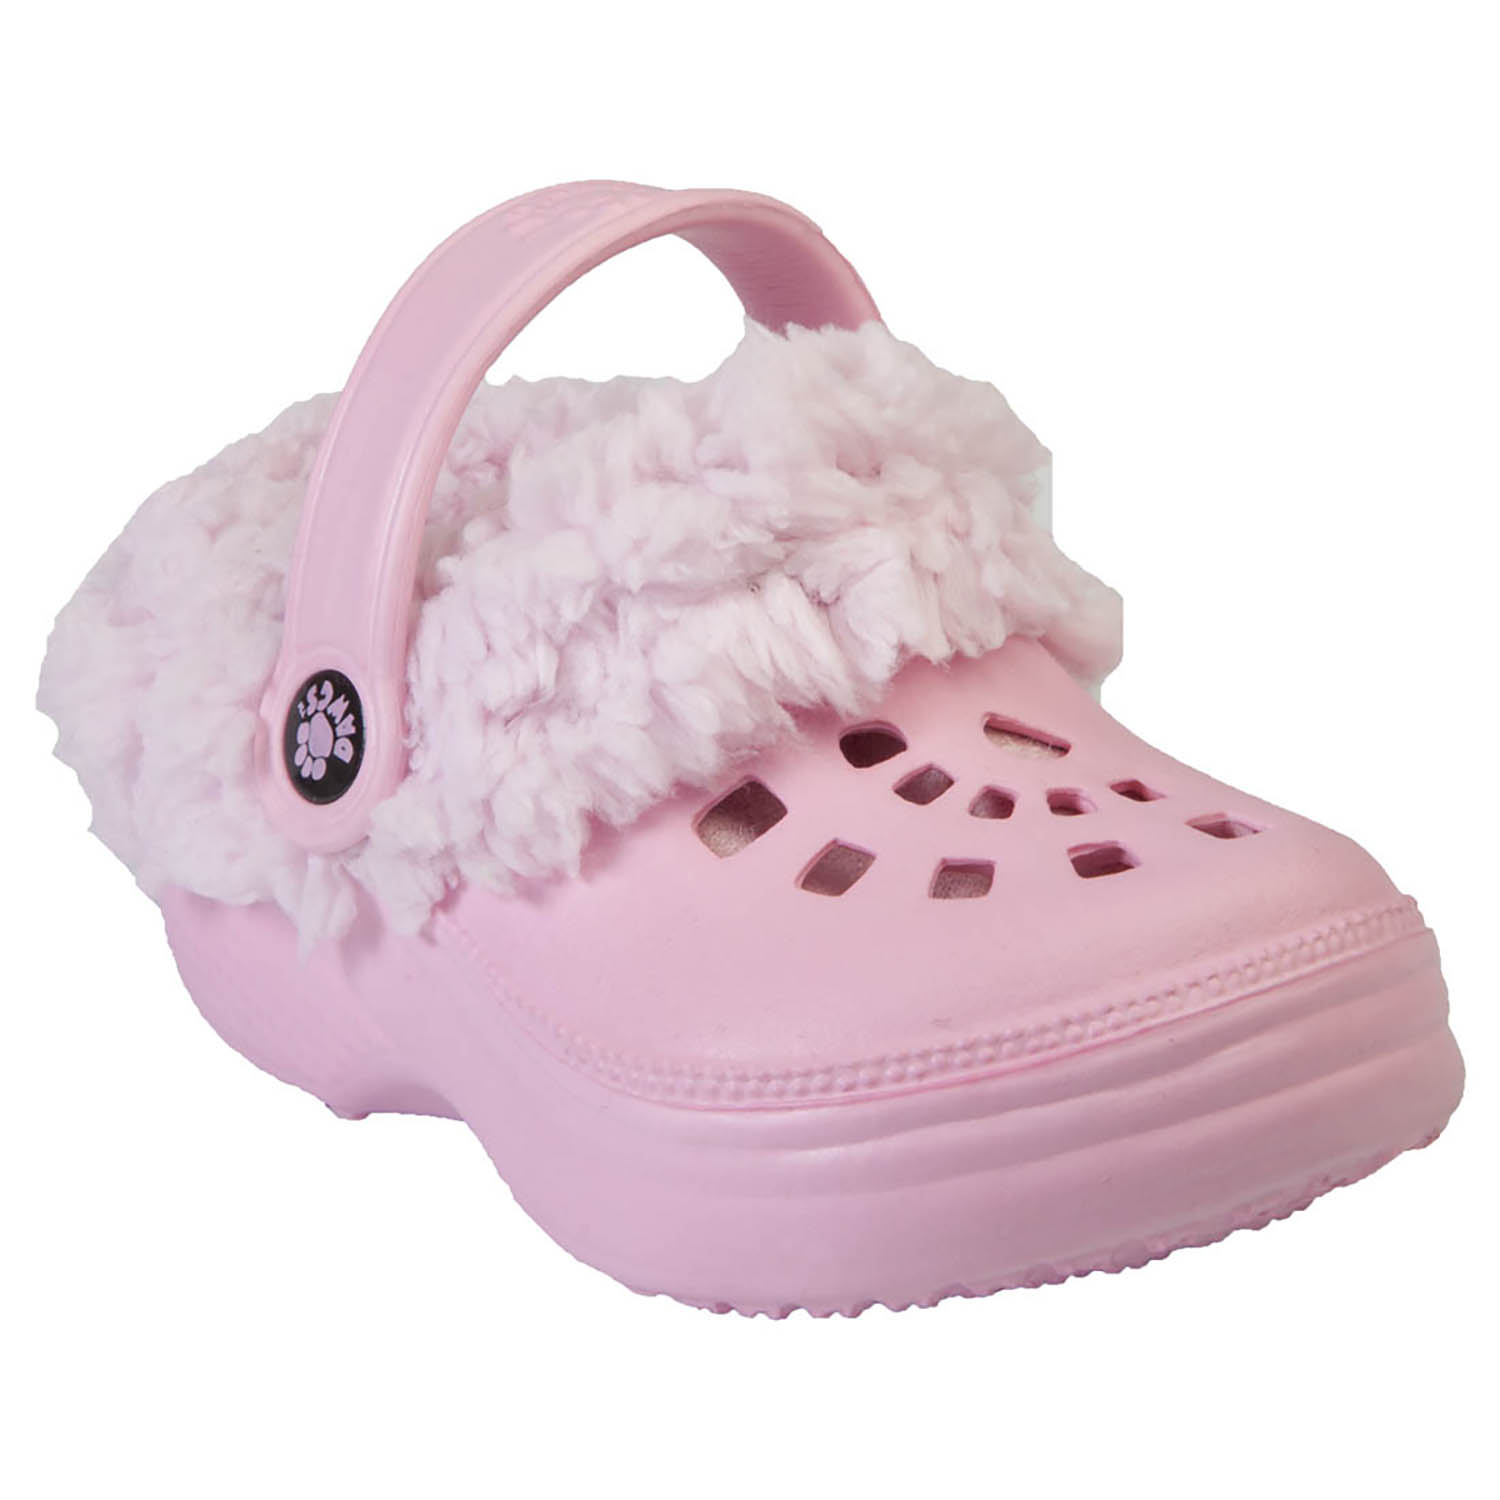 Kid's FleeceDawgs Clogs - Soft Pink with Pink 13-1